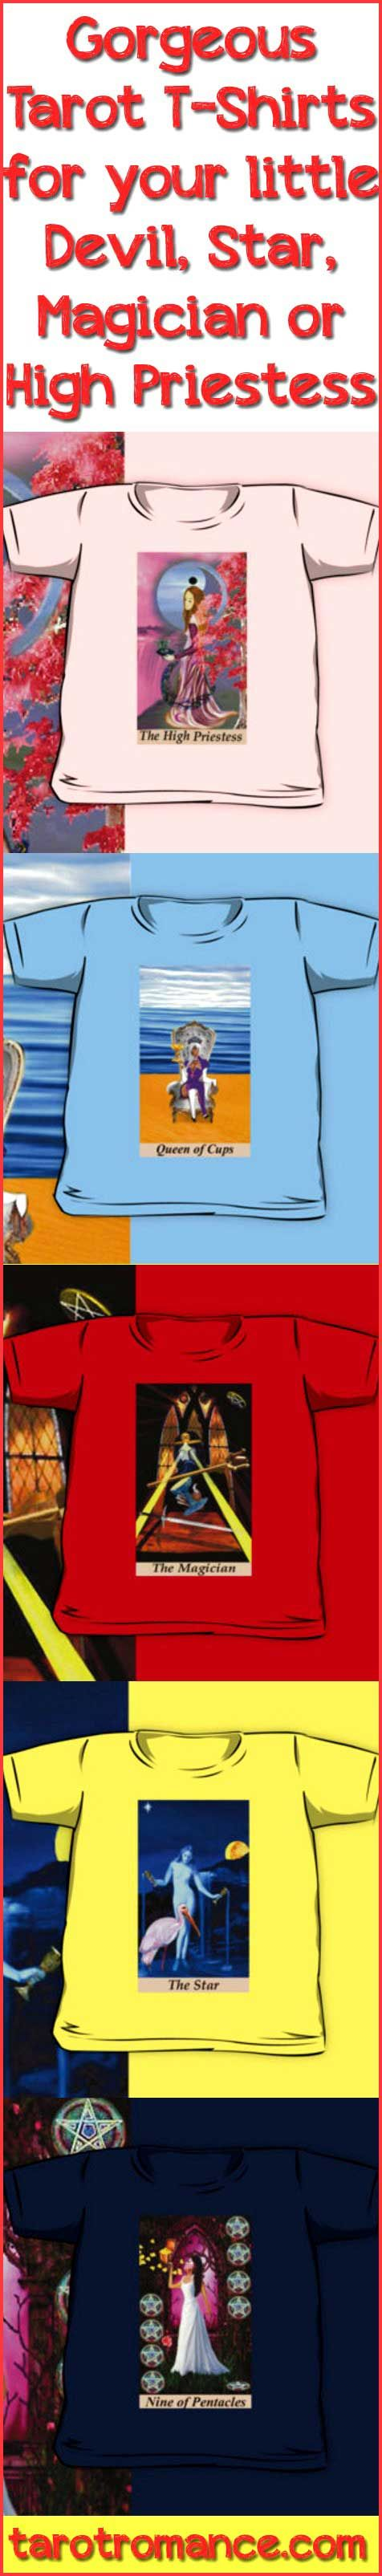 Children's Tarot T-Shirts for your little Devil, Star or High Priestess! #tarotcards